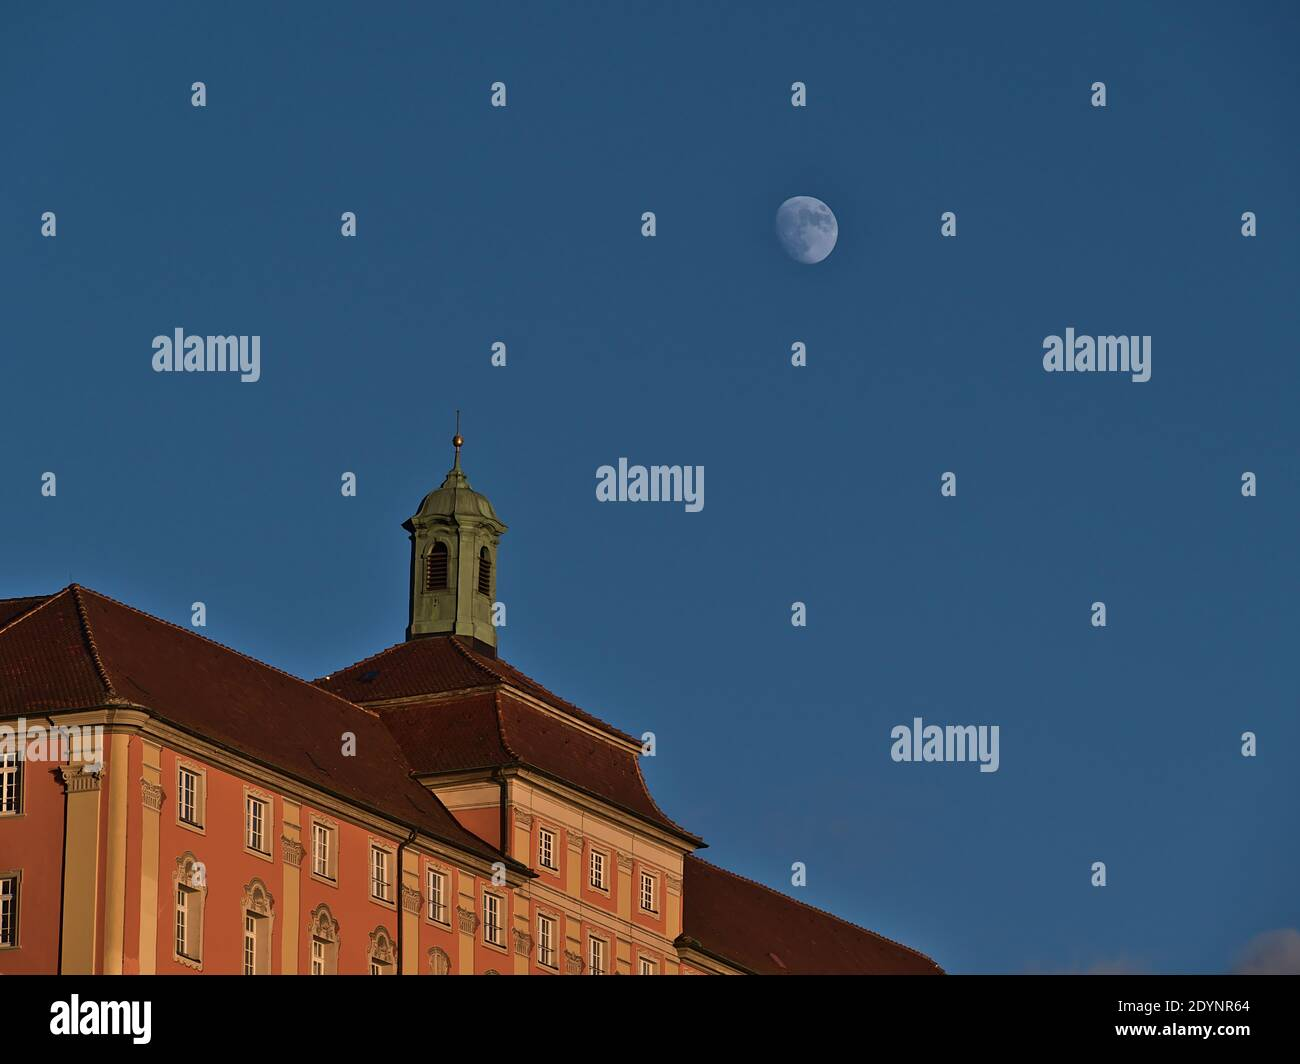 Historic building with pink colored decorated facade and small bell tower on the roof in beautiful evening light with moon visible in the blue sky. Stock Photo